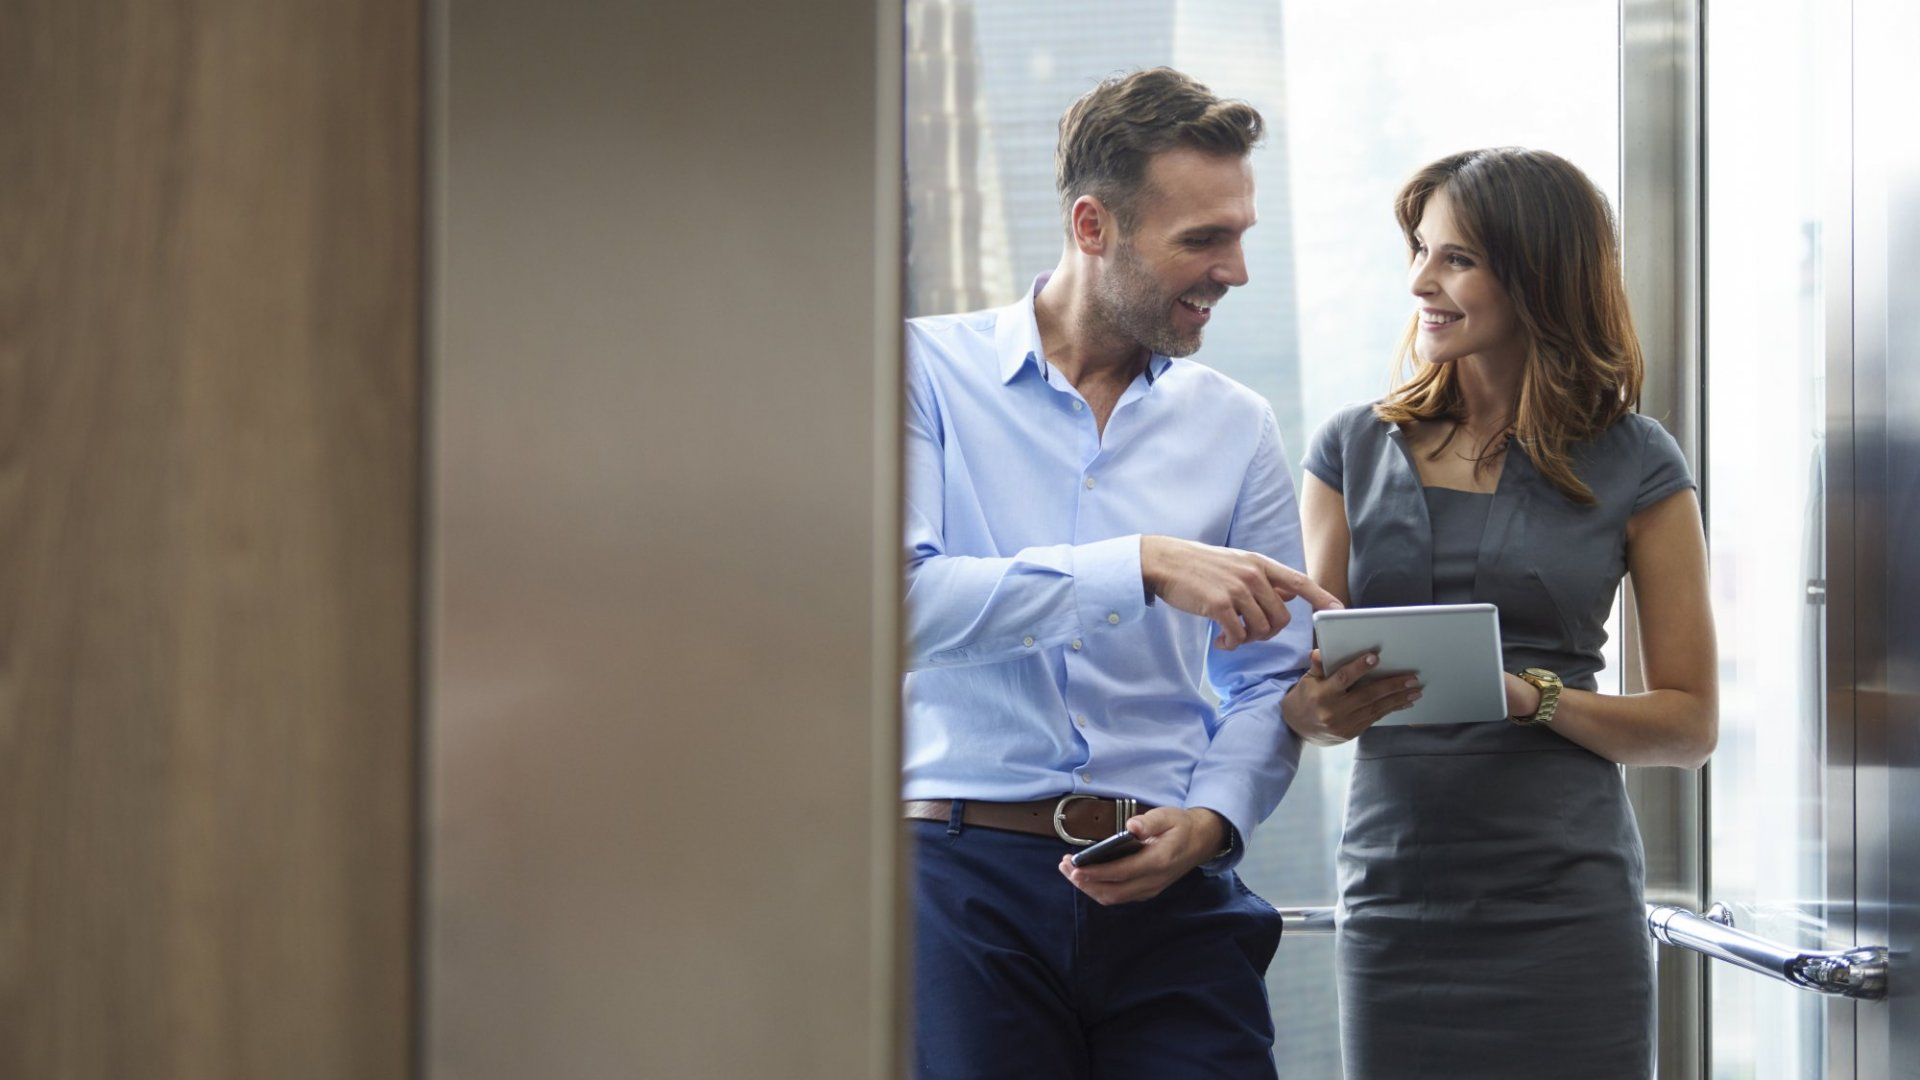 5 Ways To Take Your Elevator Pitch To The Next Level